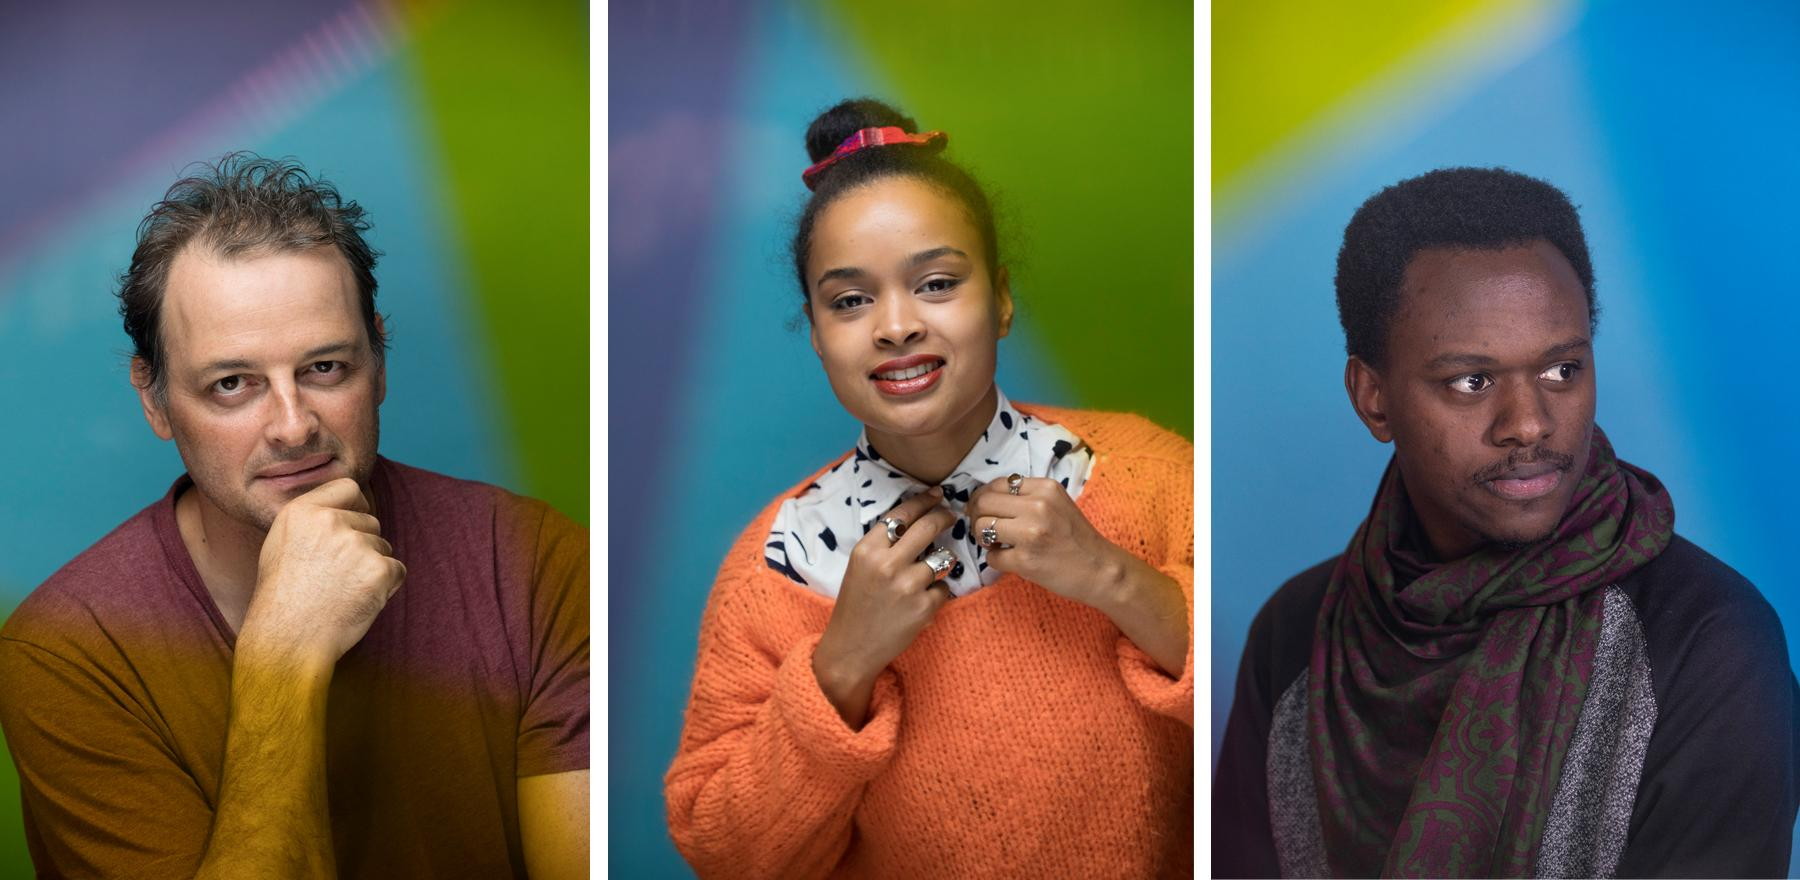 Portraits (left to right) DOP Pipas Forjaz, performance artist & actress Rebecca Pokua Korang and director Philbert Aime Mbabazi.